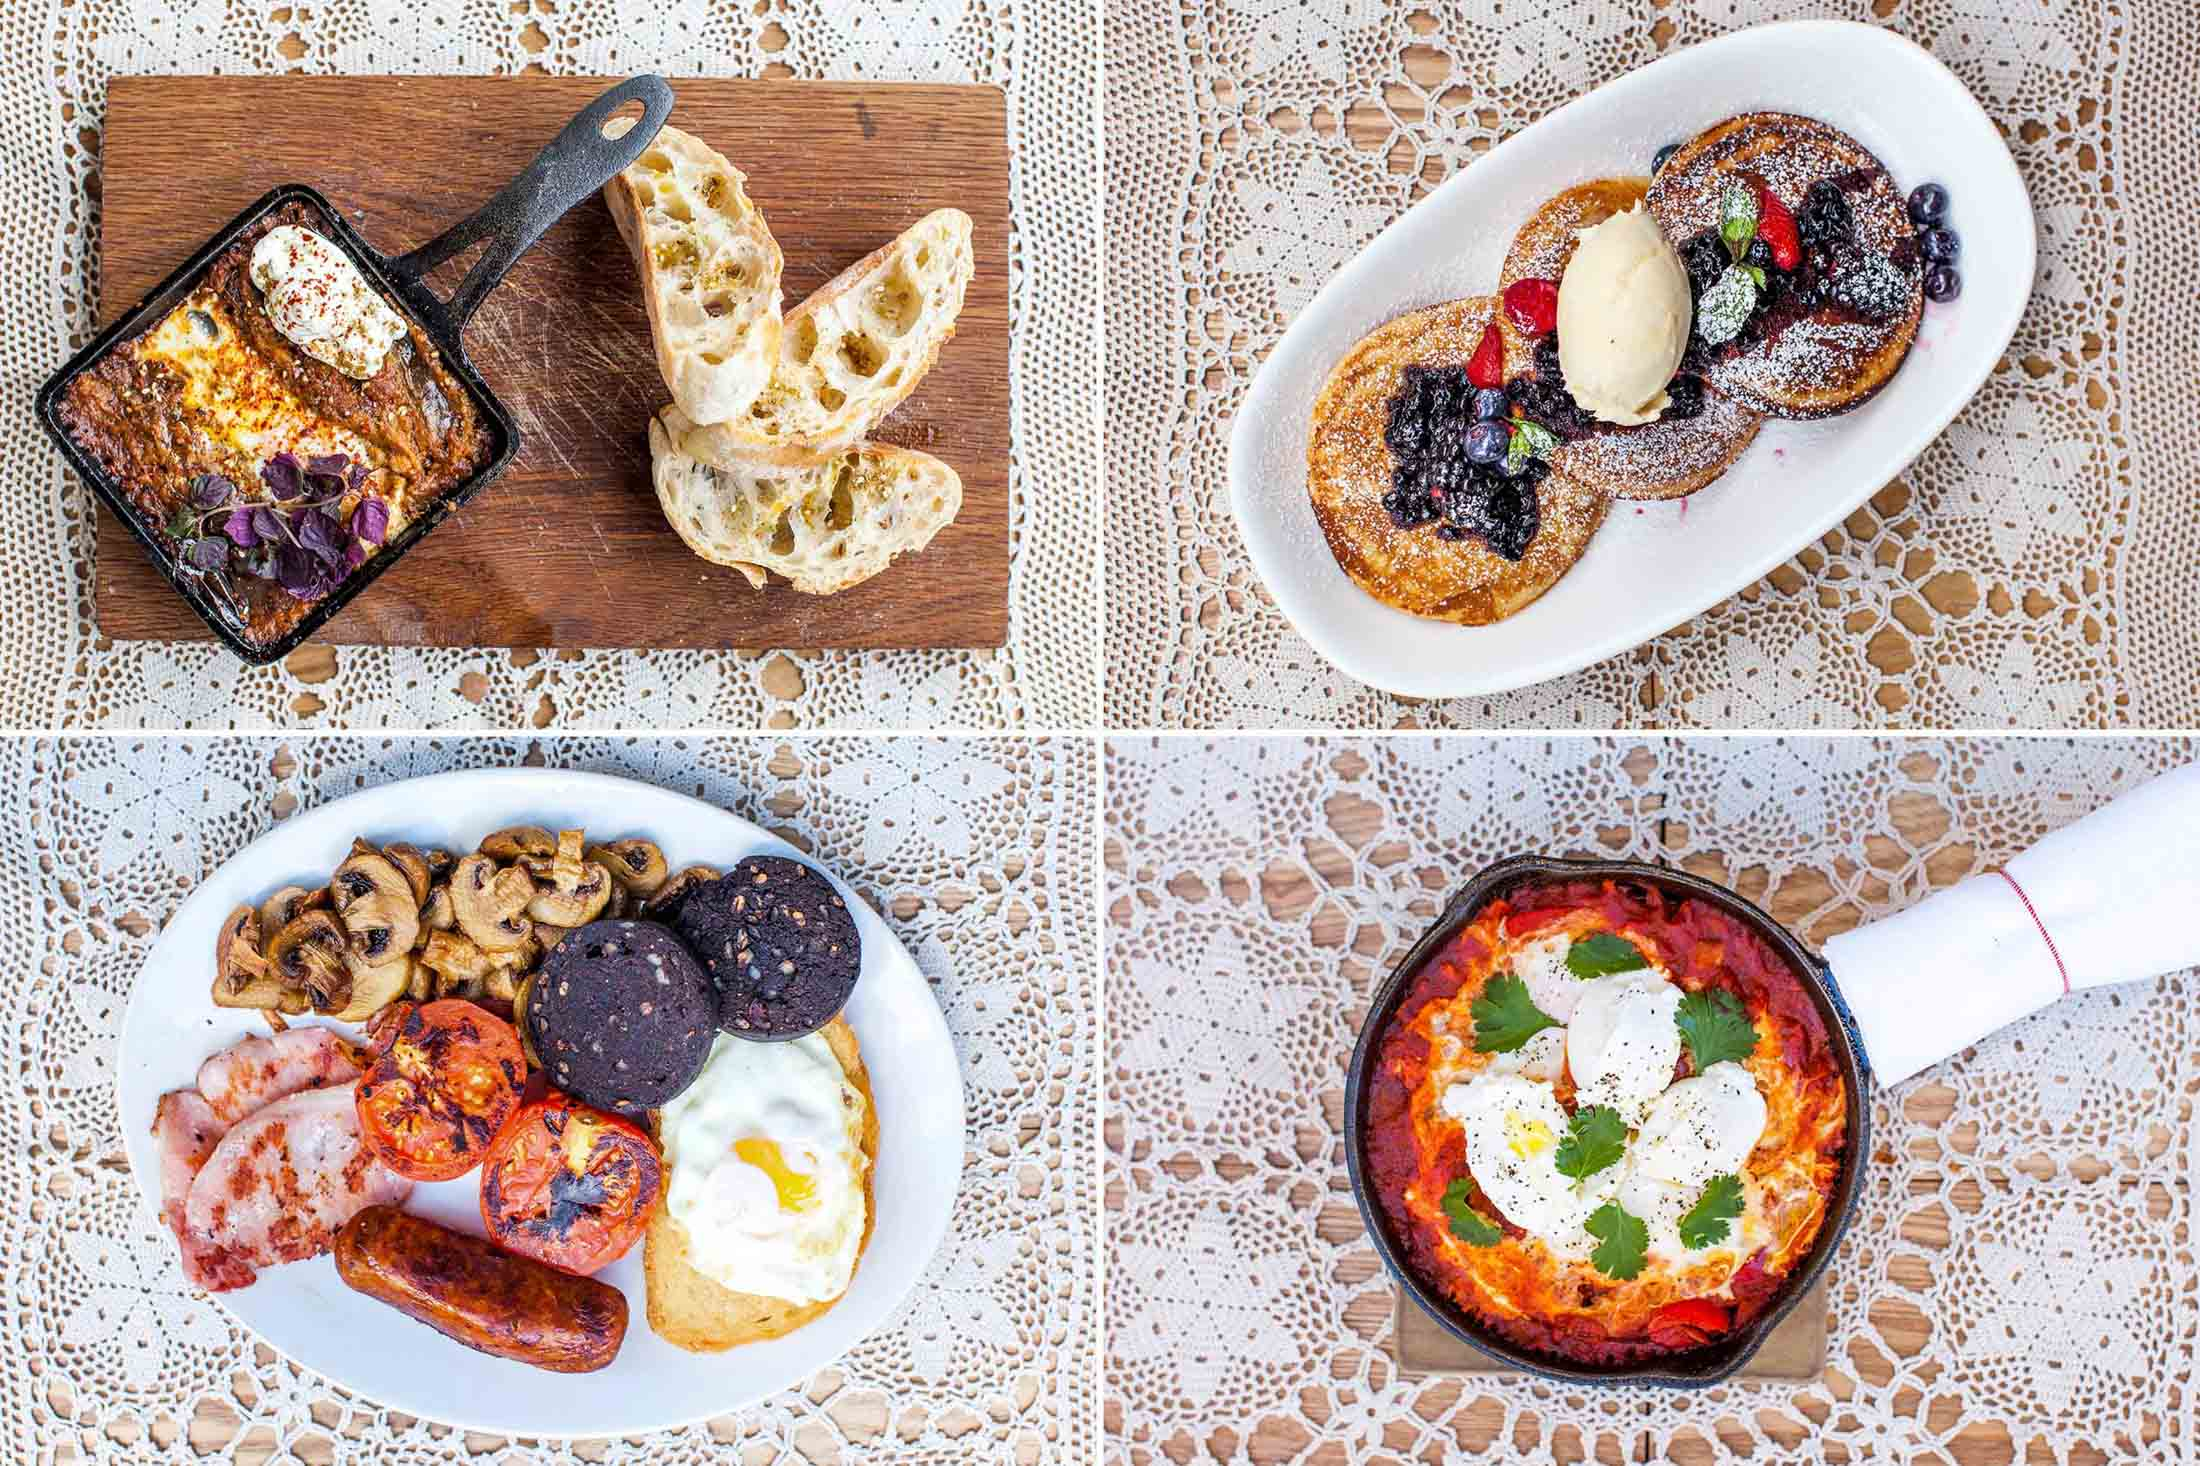 Brunch Best The Best Breakfast In London According To Top Chefs